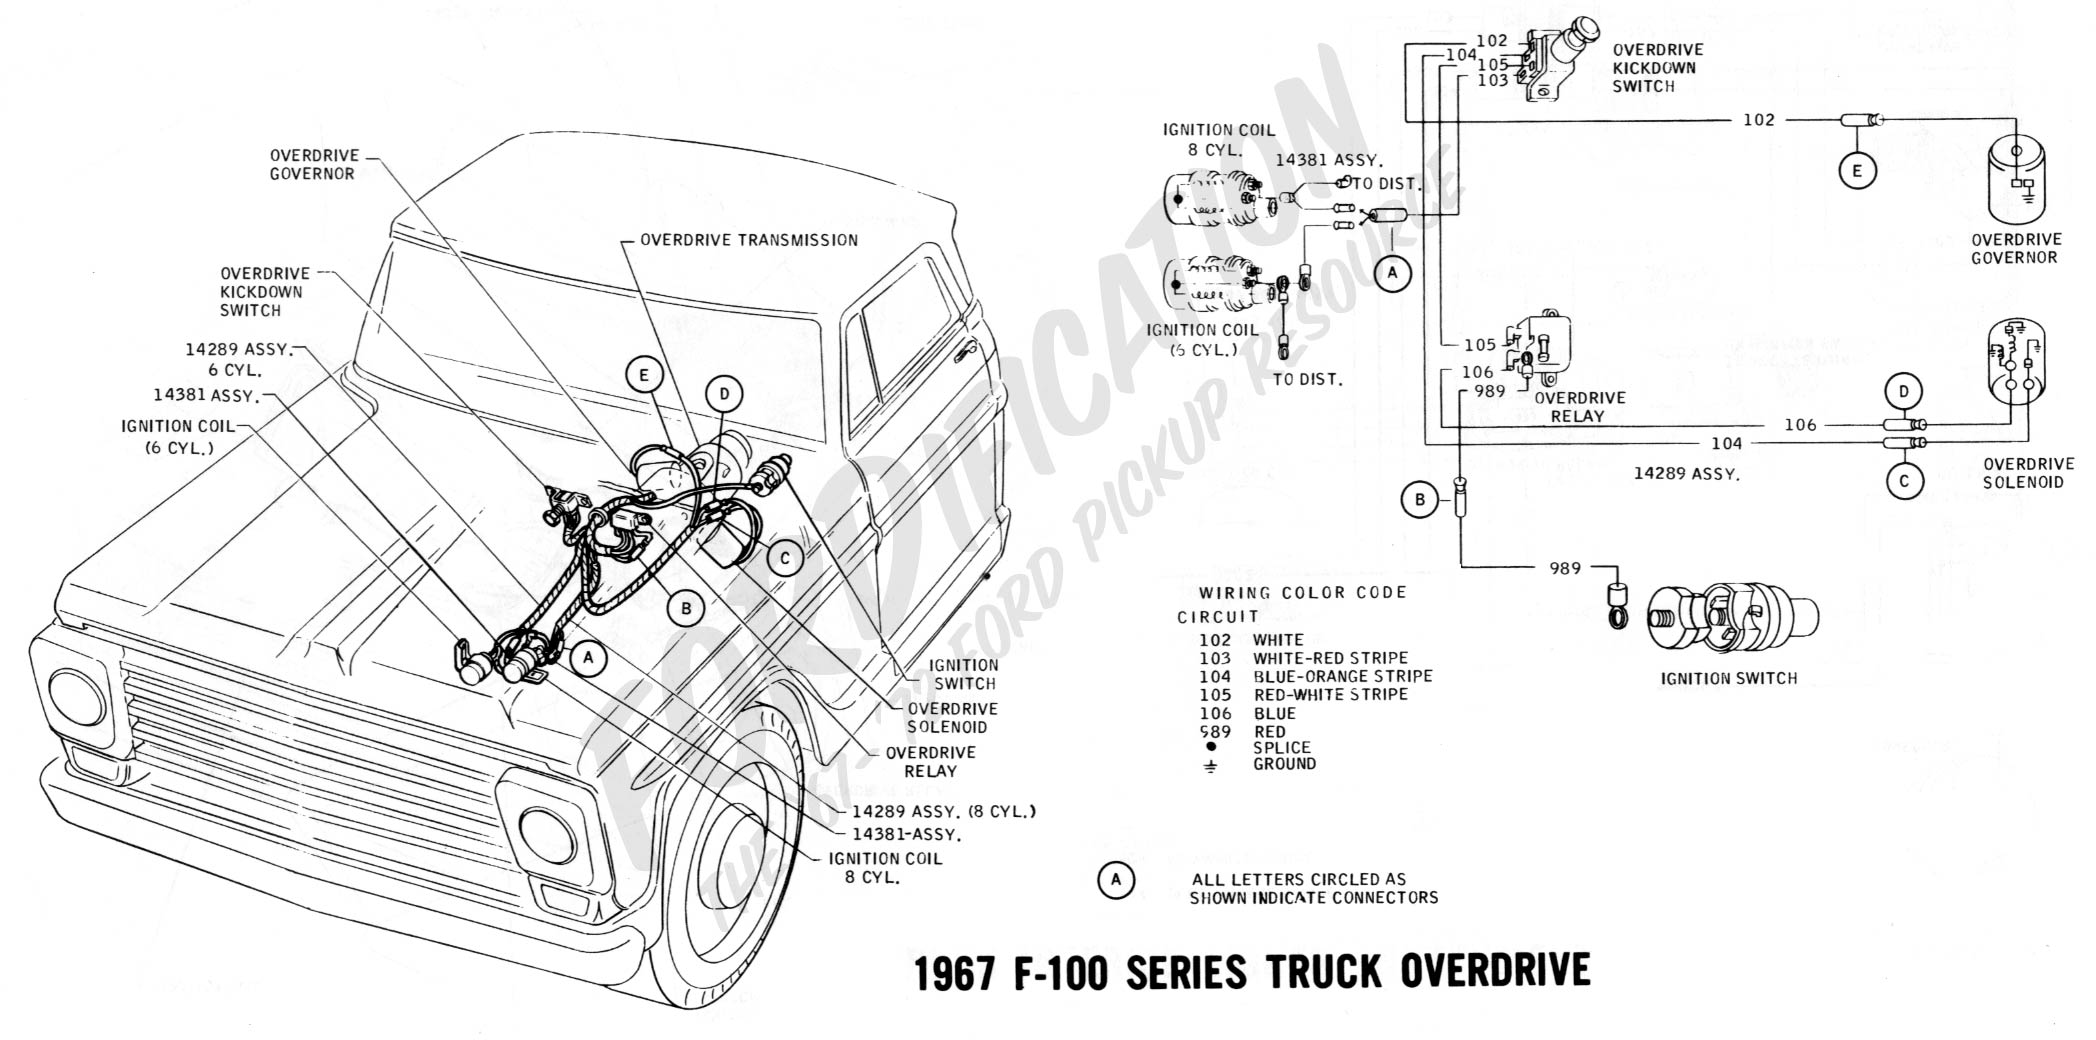 1978 F250 Steering Column Wiring Diagram Opinions About 1977 Ford F 250 Fuse Box Truck Technical Drawings And Schematics Section H Rh Fordification Com